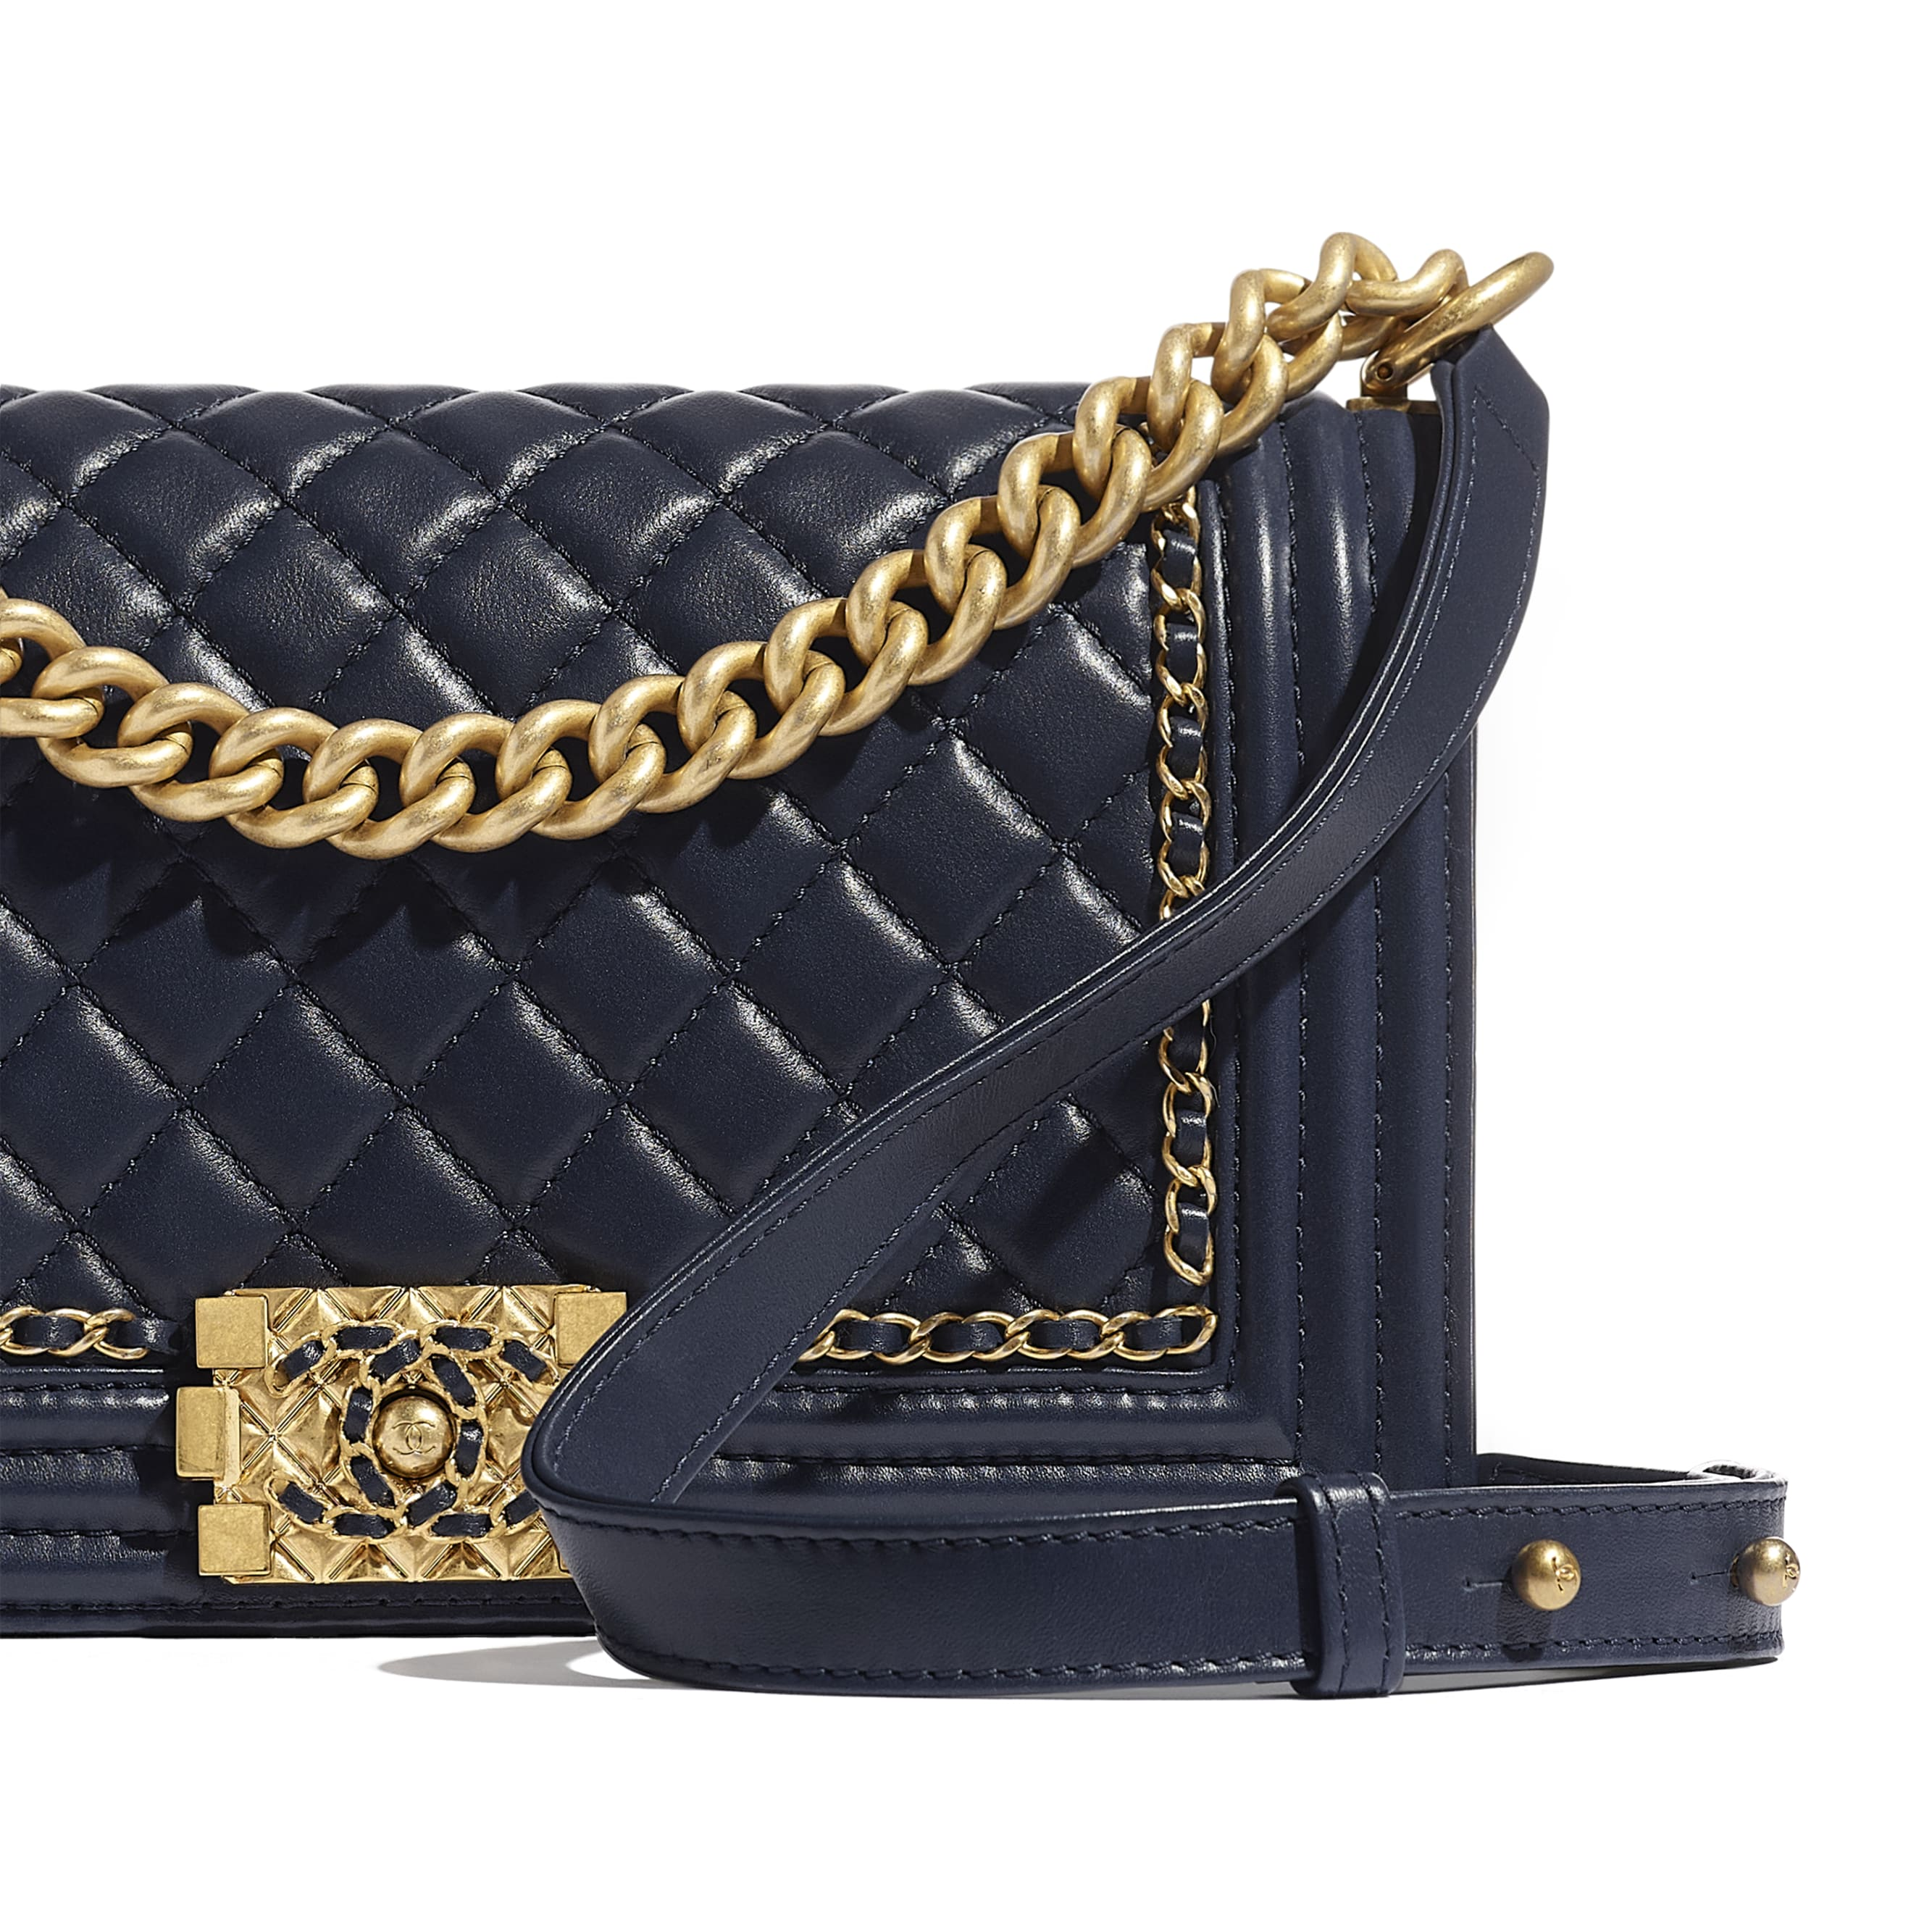 BOY CHANEL Handbag - Navy Blue - Calfskin & Gold-Tone Metal - Extra view - see standard sized version